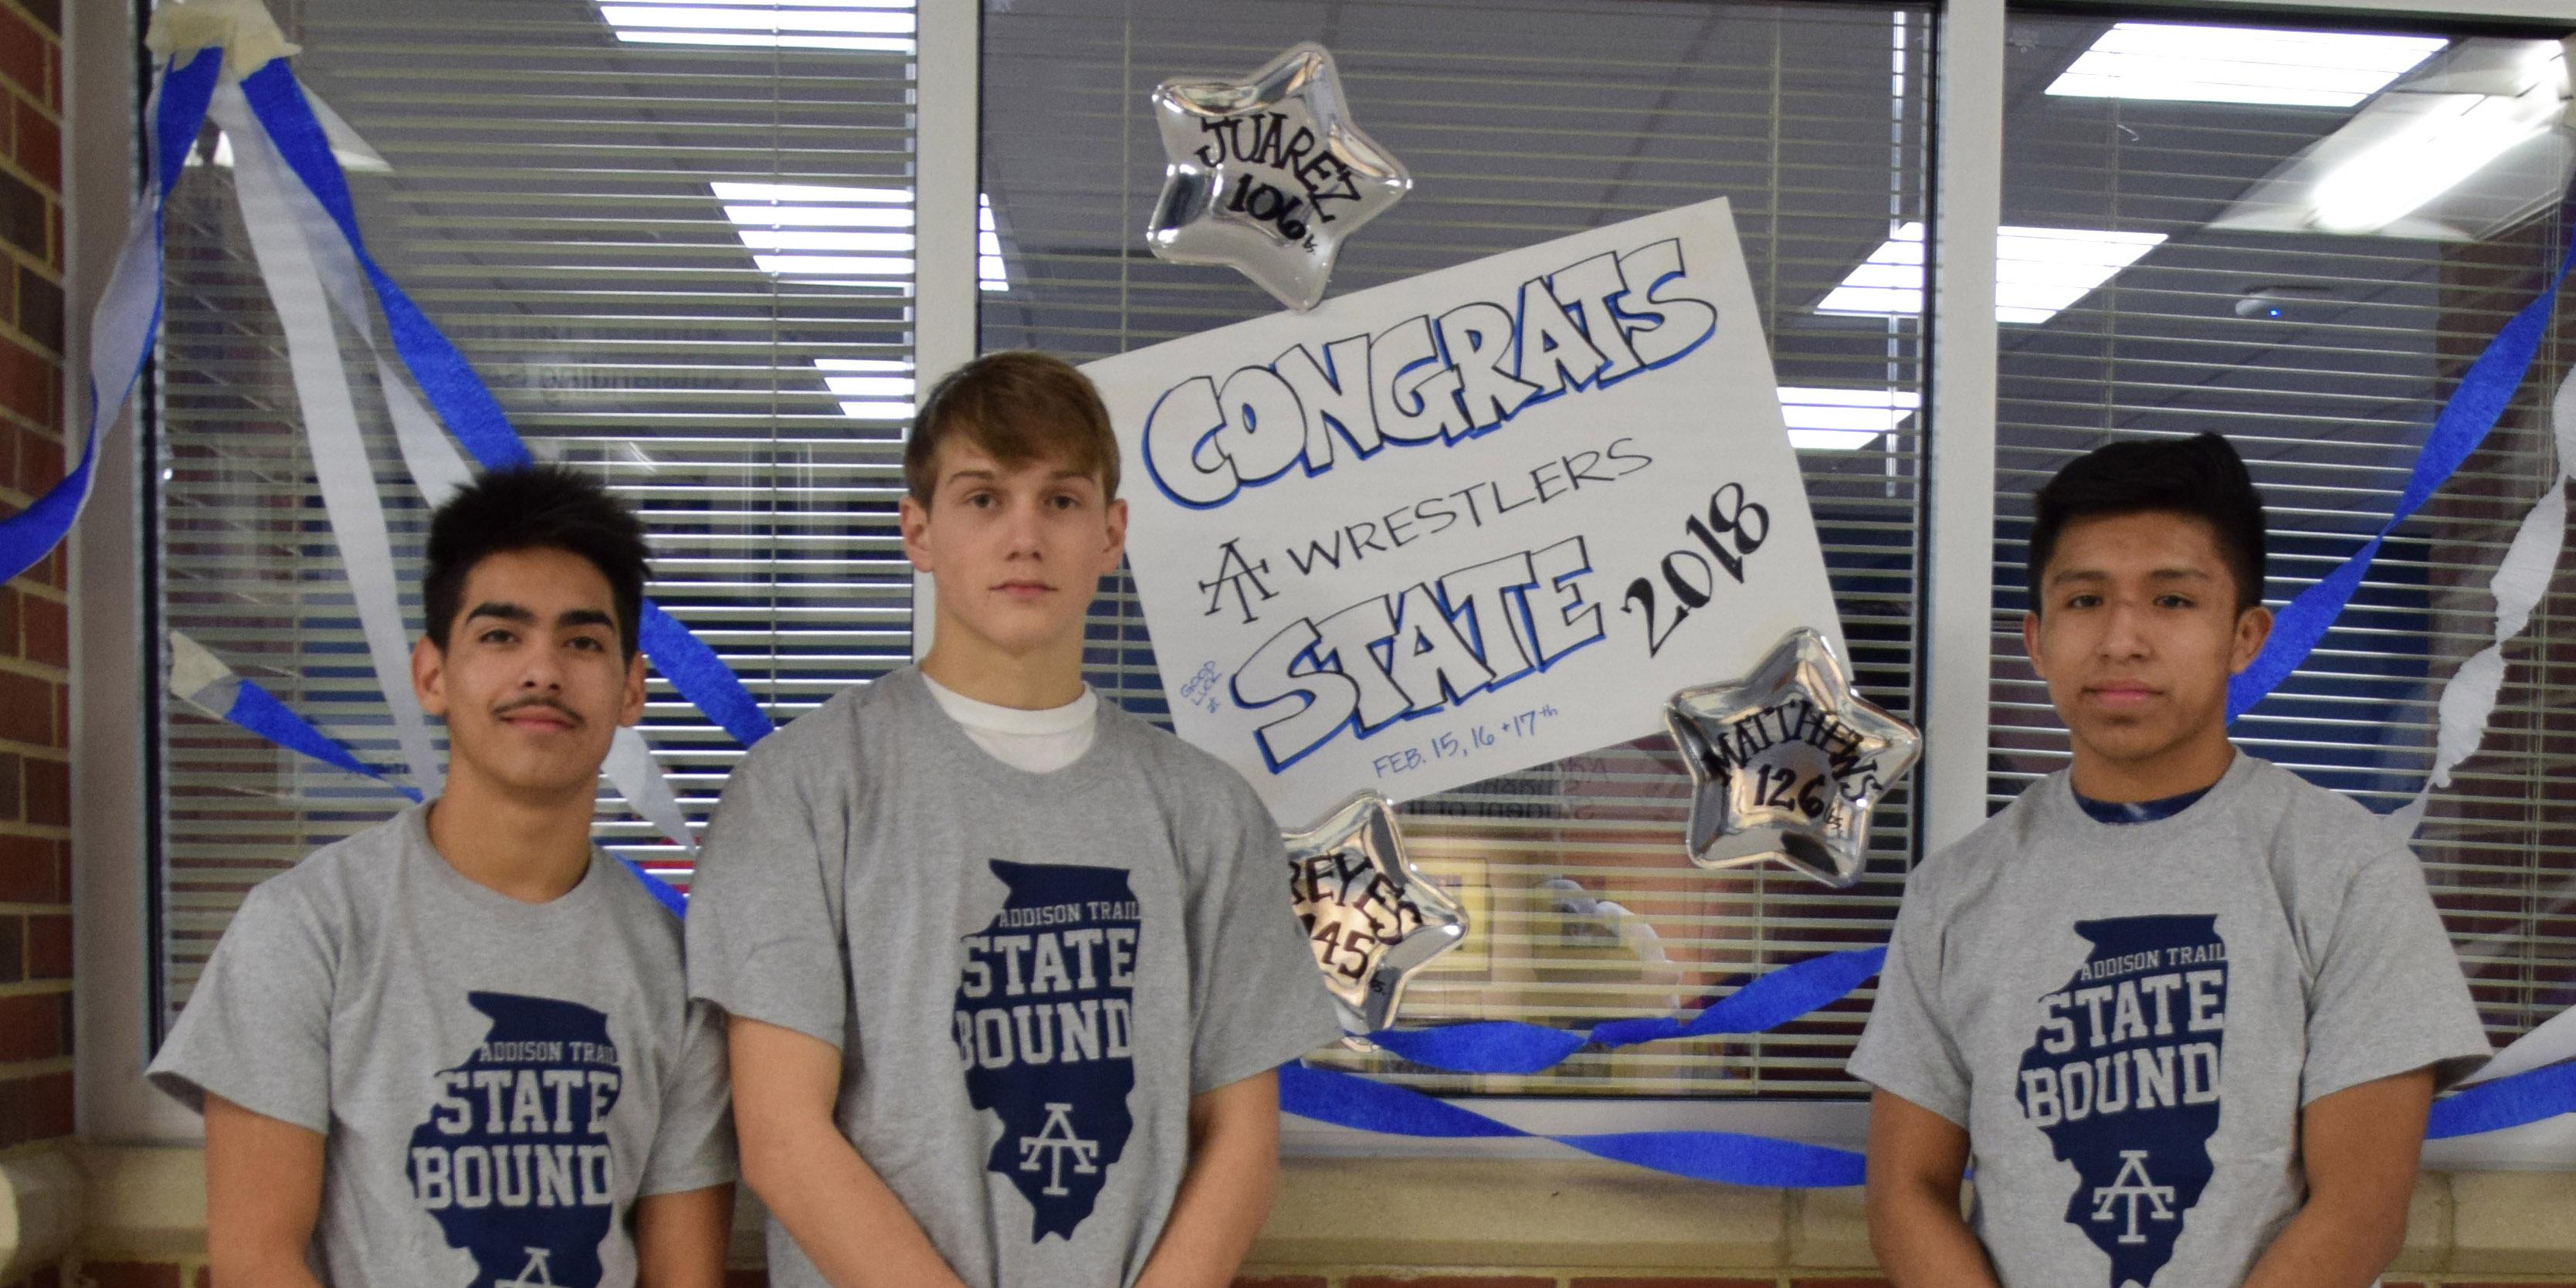 Addison Trail hosts State send-off celebration for three members of the Wrestling Team